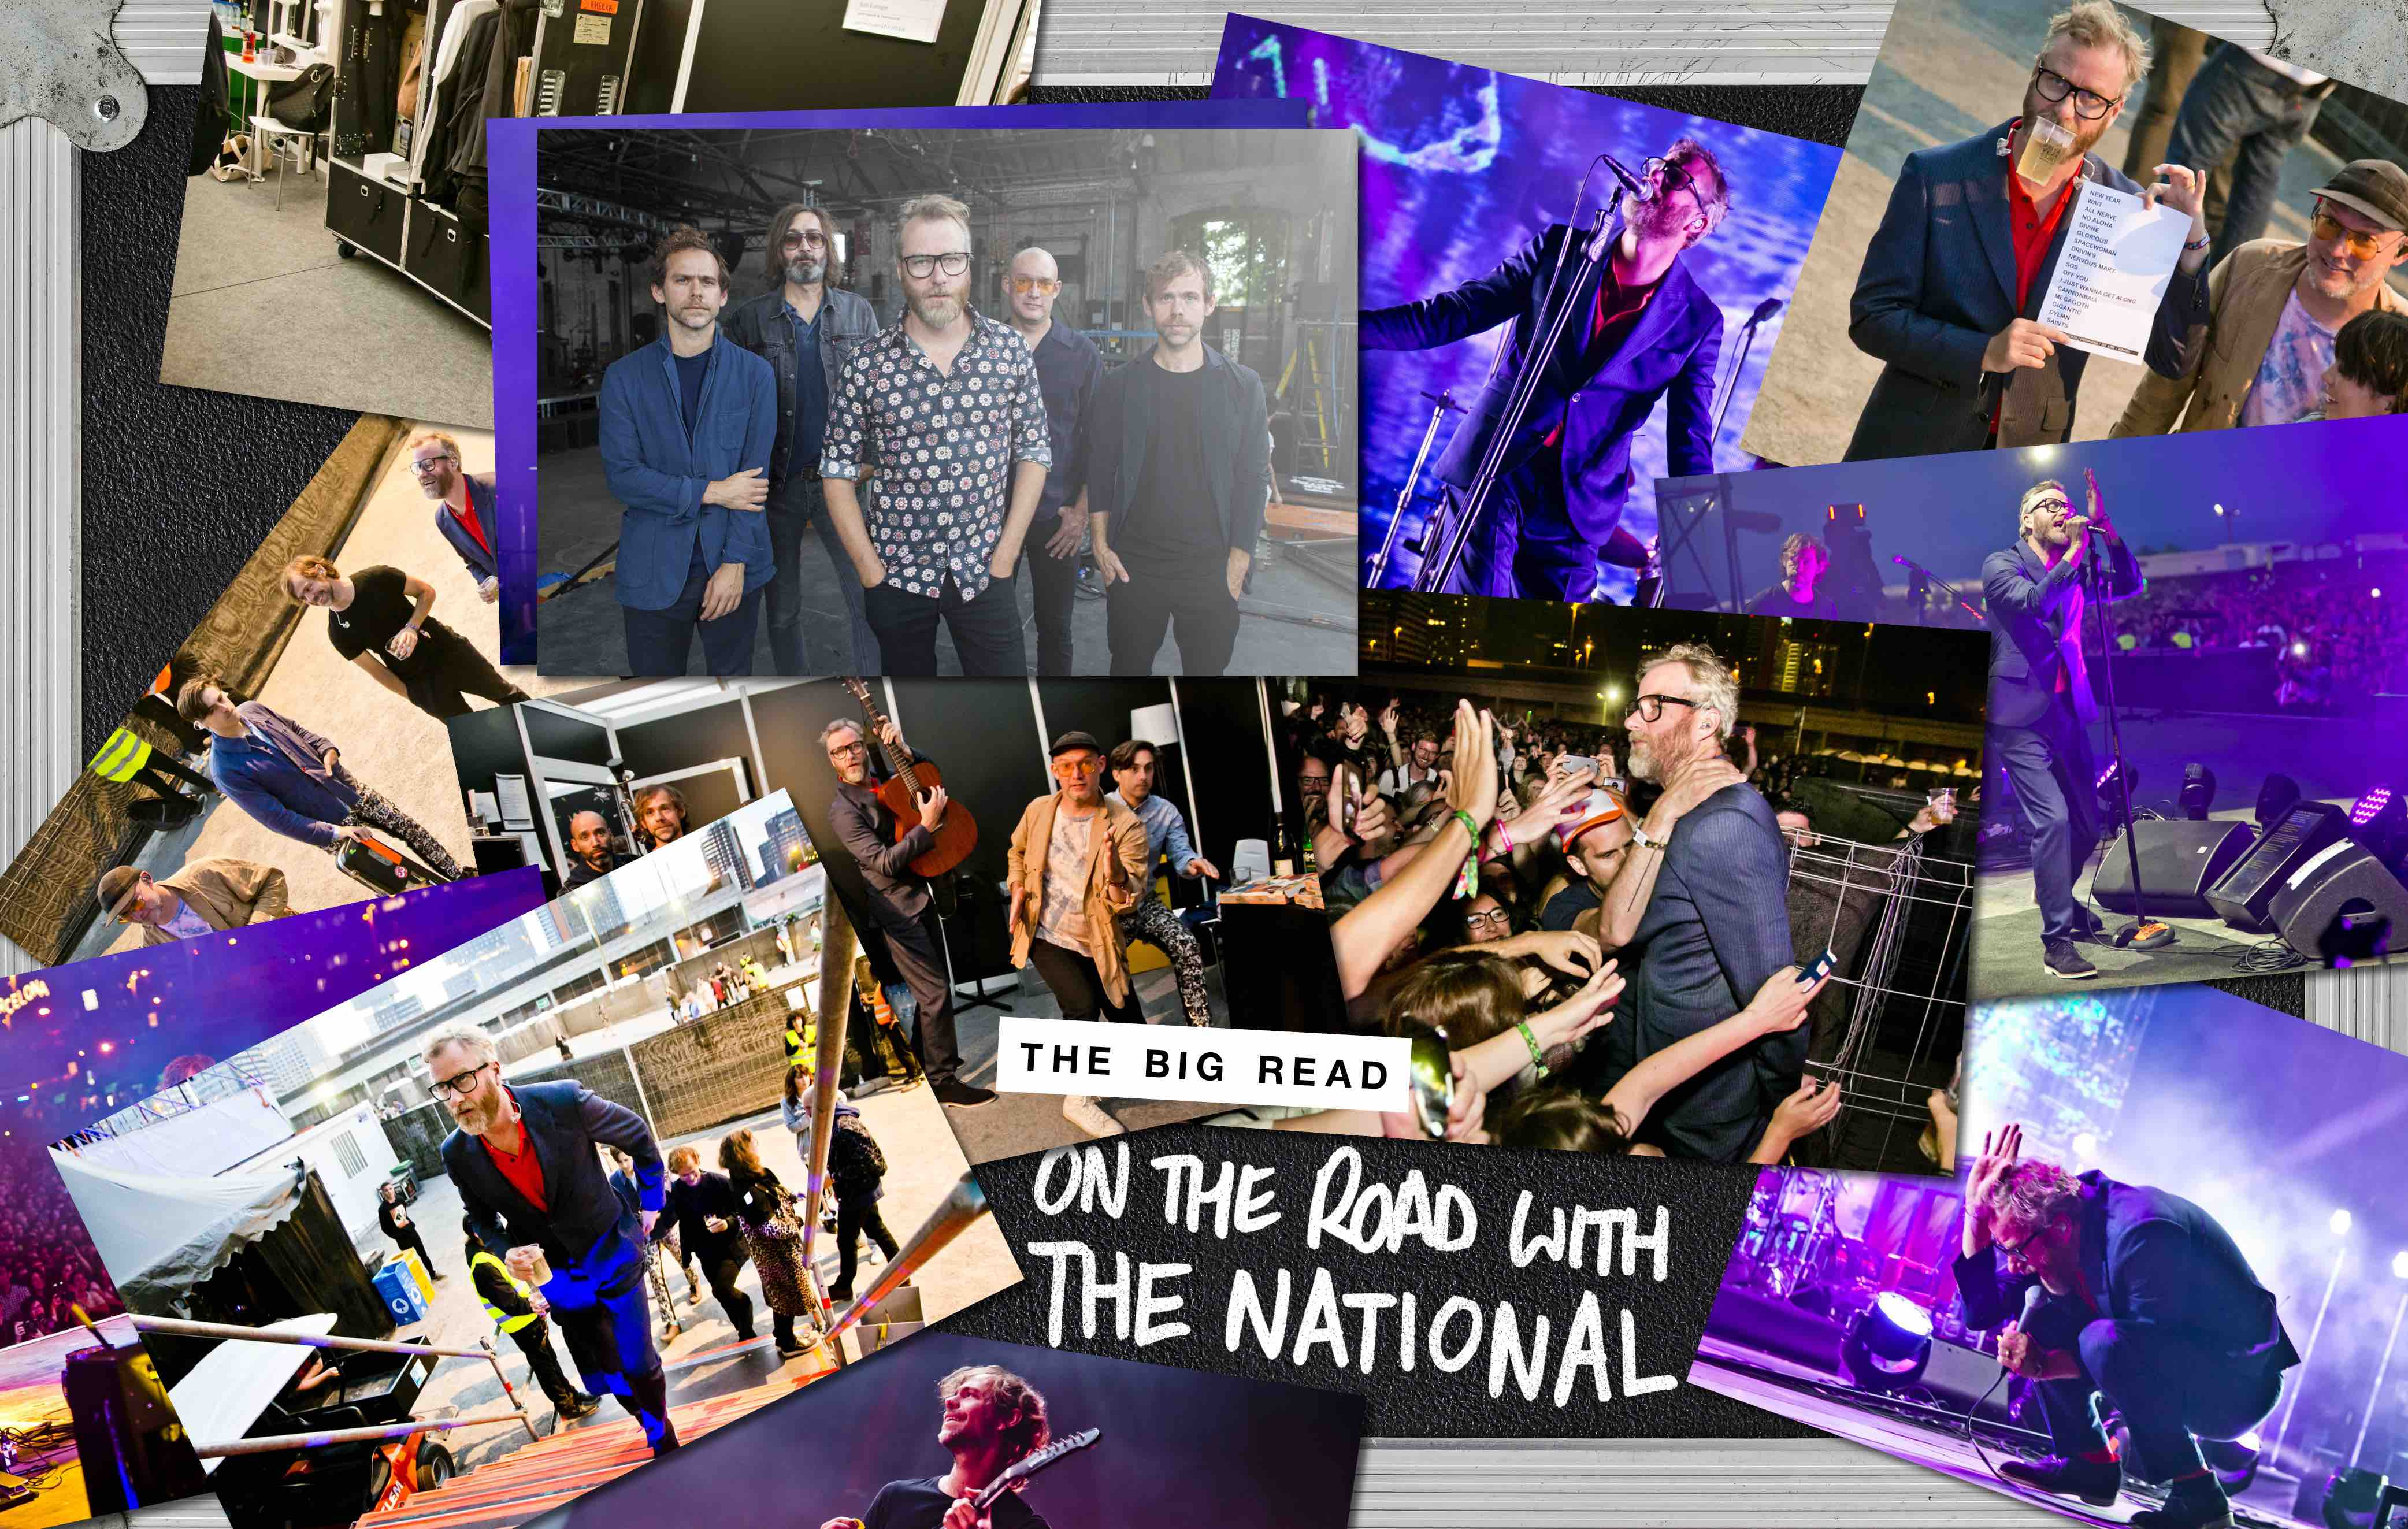 Nme music news reviews videos galleries tickets and blogs nme big read lead fandeluxe Image collections